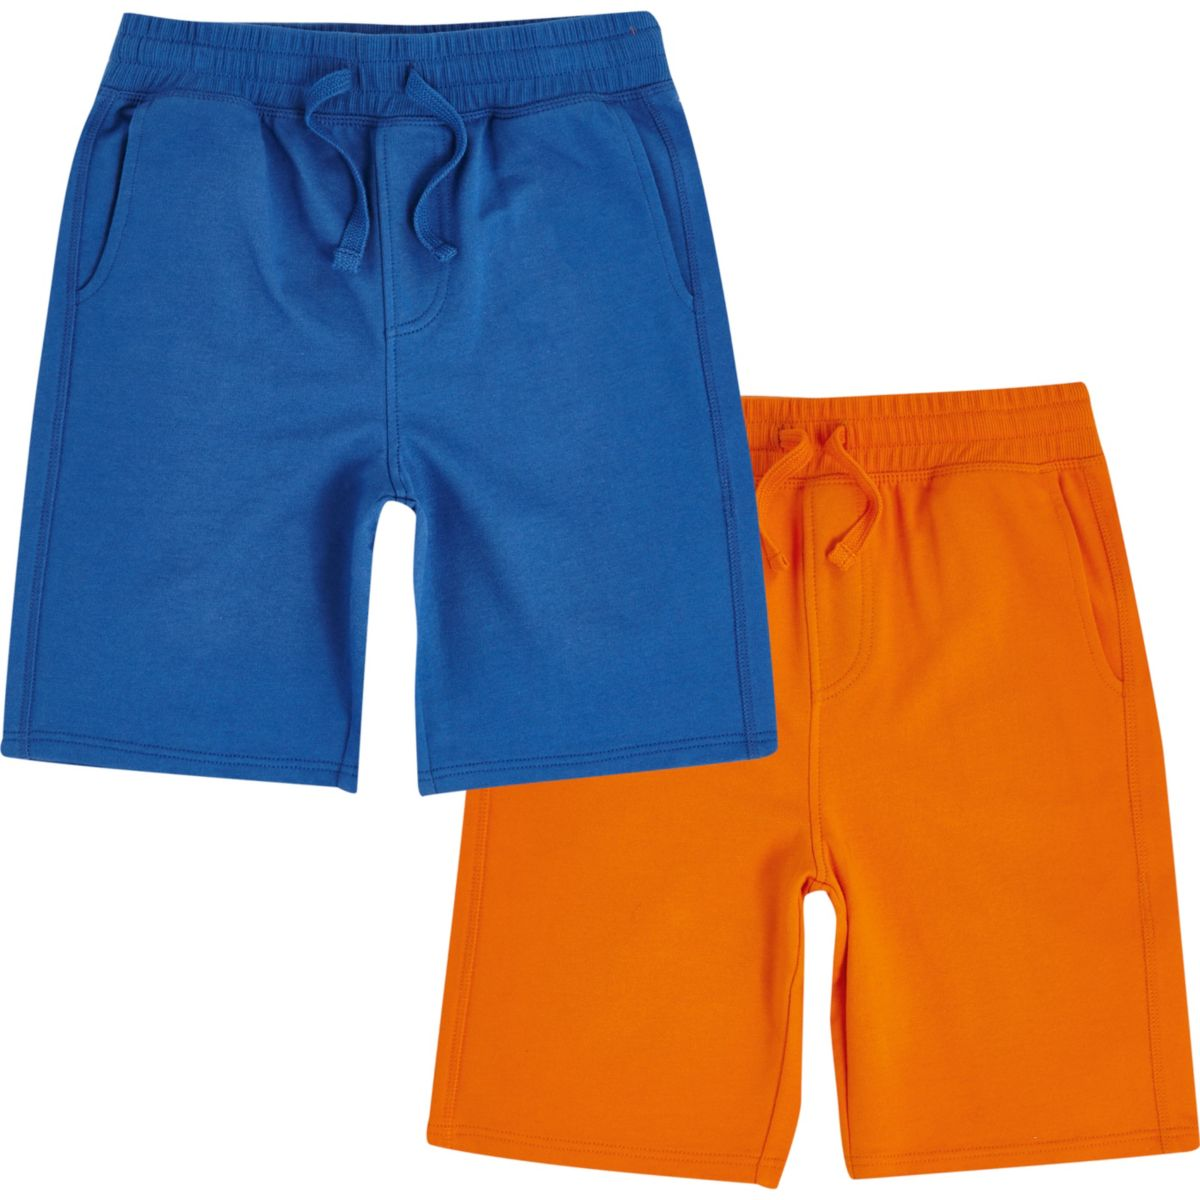 Boys blue and orange jersey shorts